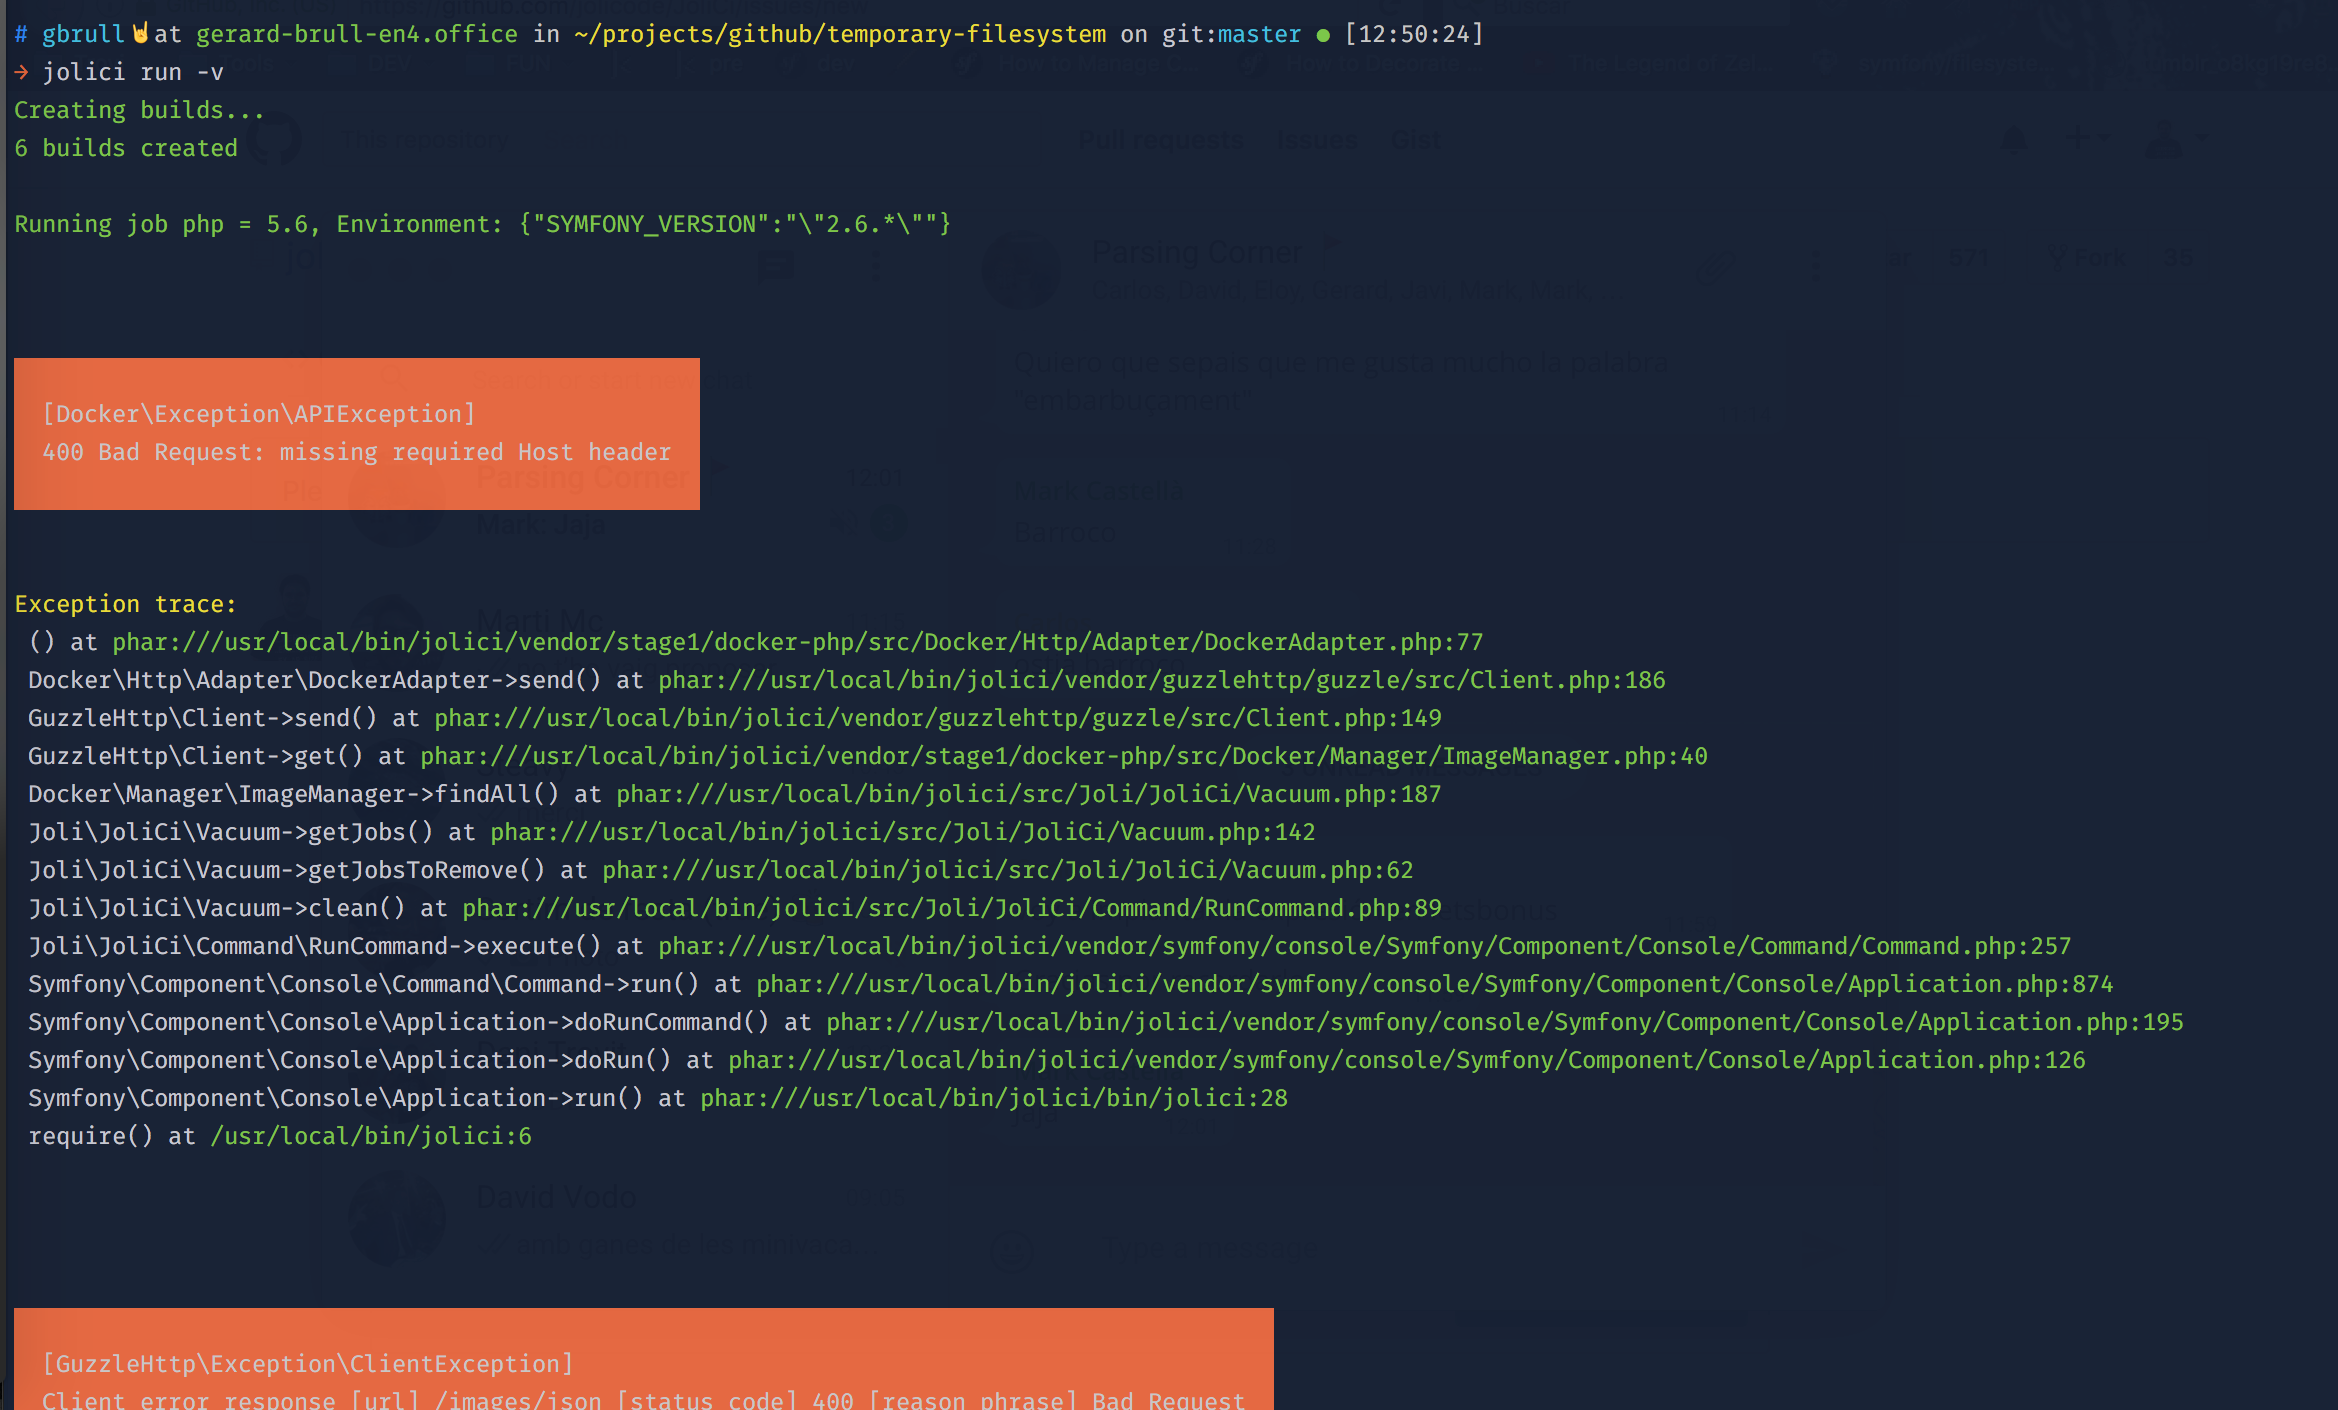 1__gbrull_gerard-brull-en4____projects_github_temporary-filesystem__zsh_